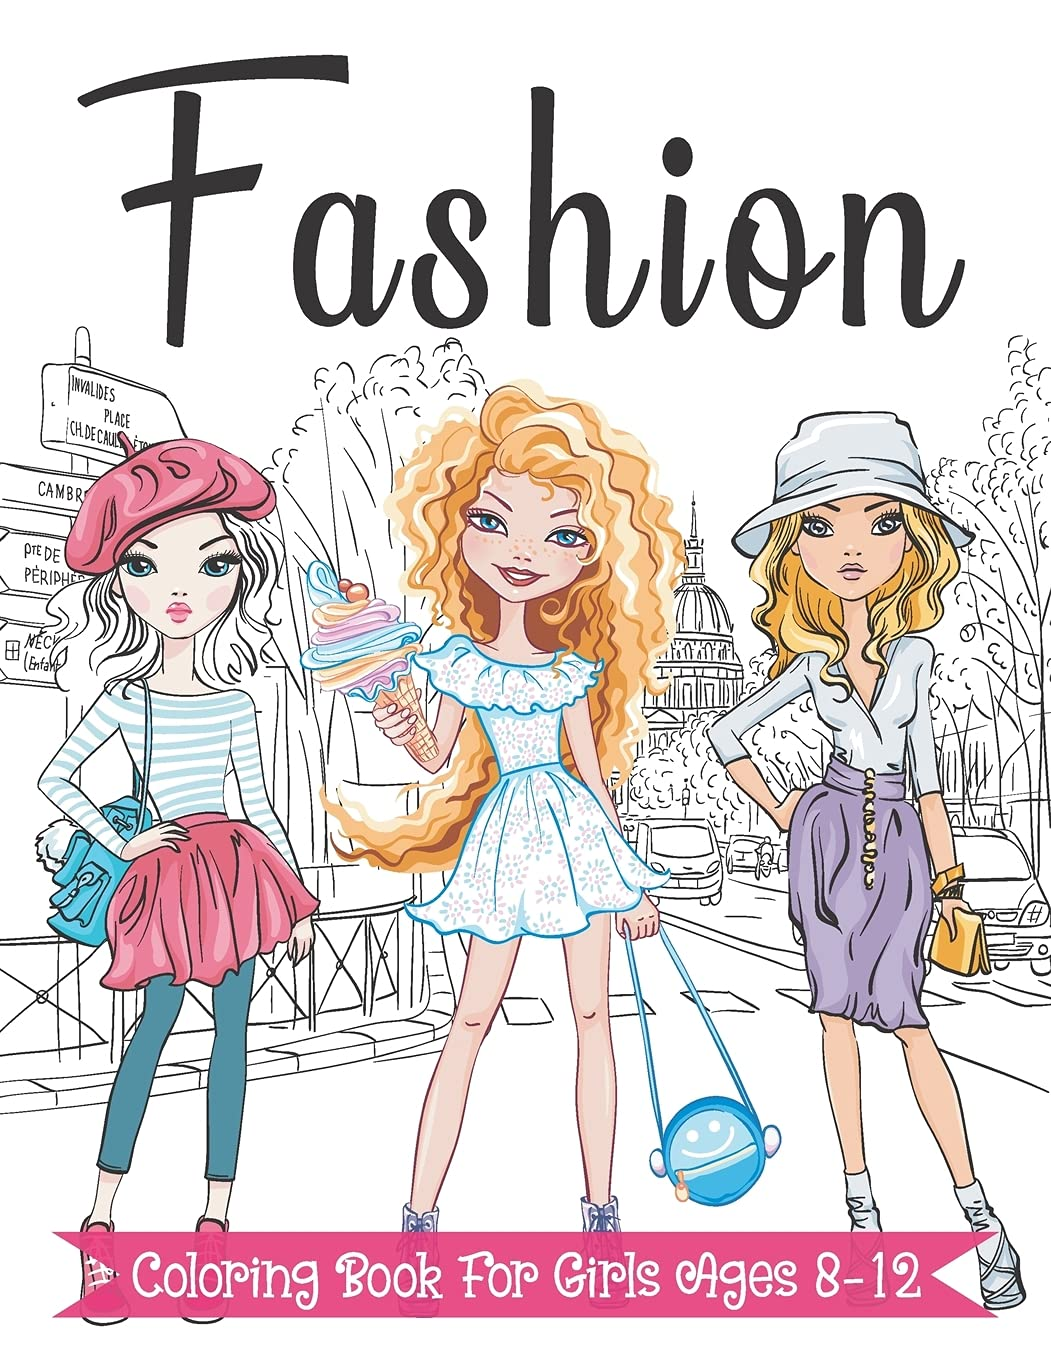 Fashion Coloring Book For Girls Ages 8-12: Fun and Stylish Fashion and Beauty Coloring Pages for Girls, Kids, Teens and Women with 55+ Fabulous Fashion Style